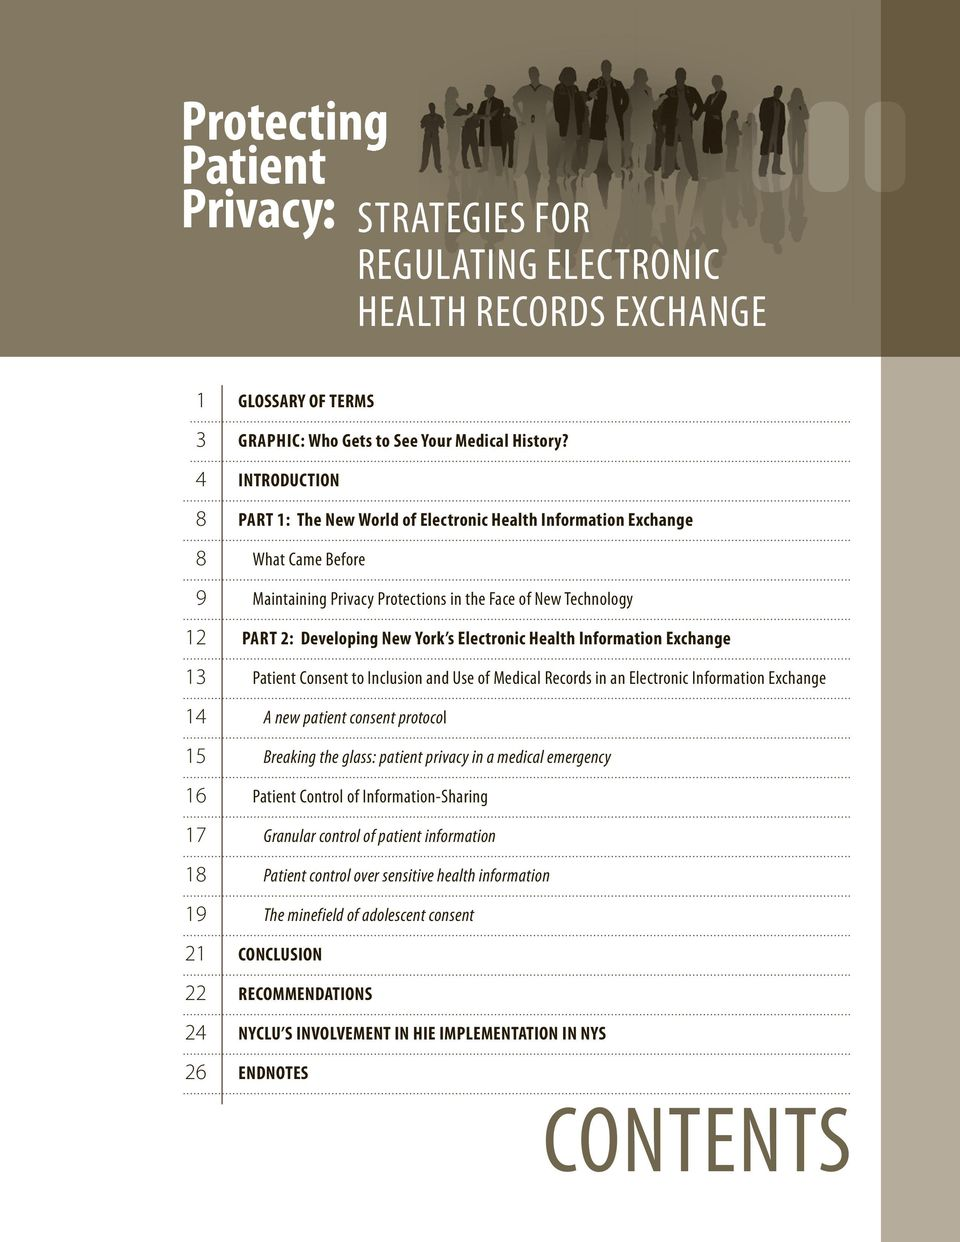 Electronic Health Information Exchange 13 Patient Consent to inclusion and Use of Medical records in an electronic information exchange 14 A new patient consent protocol 15 Breaking the glass: